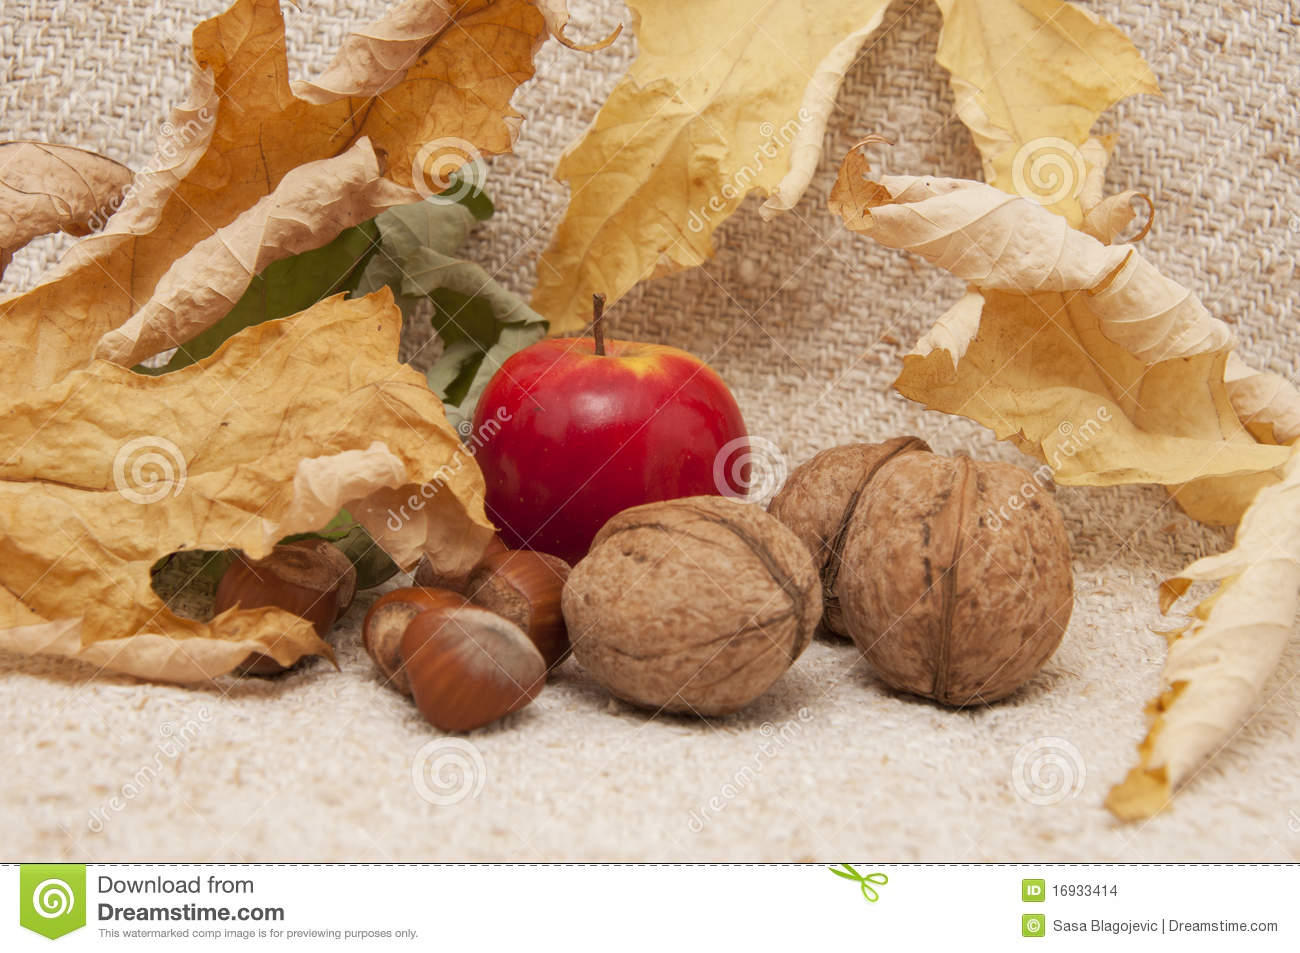 Apples With Hazelnuts And Walnuts Stock Images - Image ...